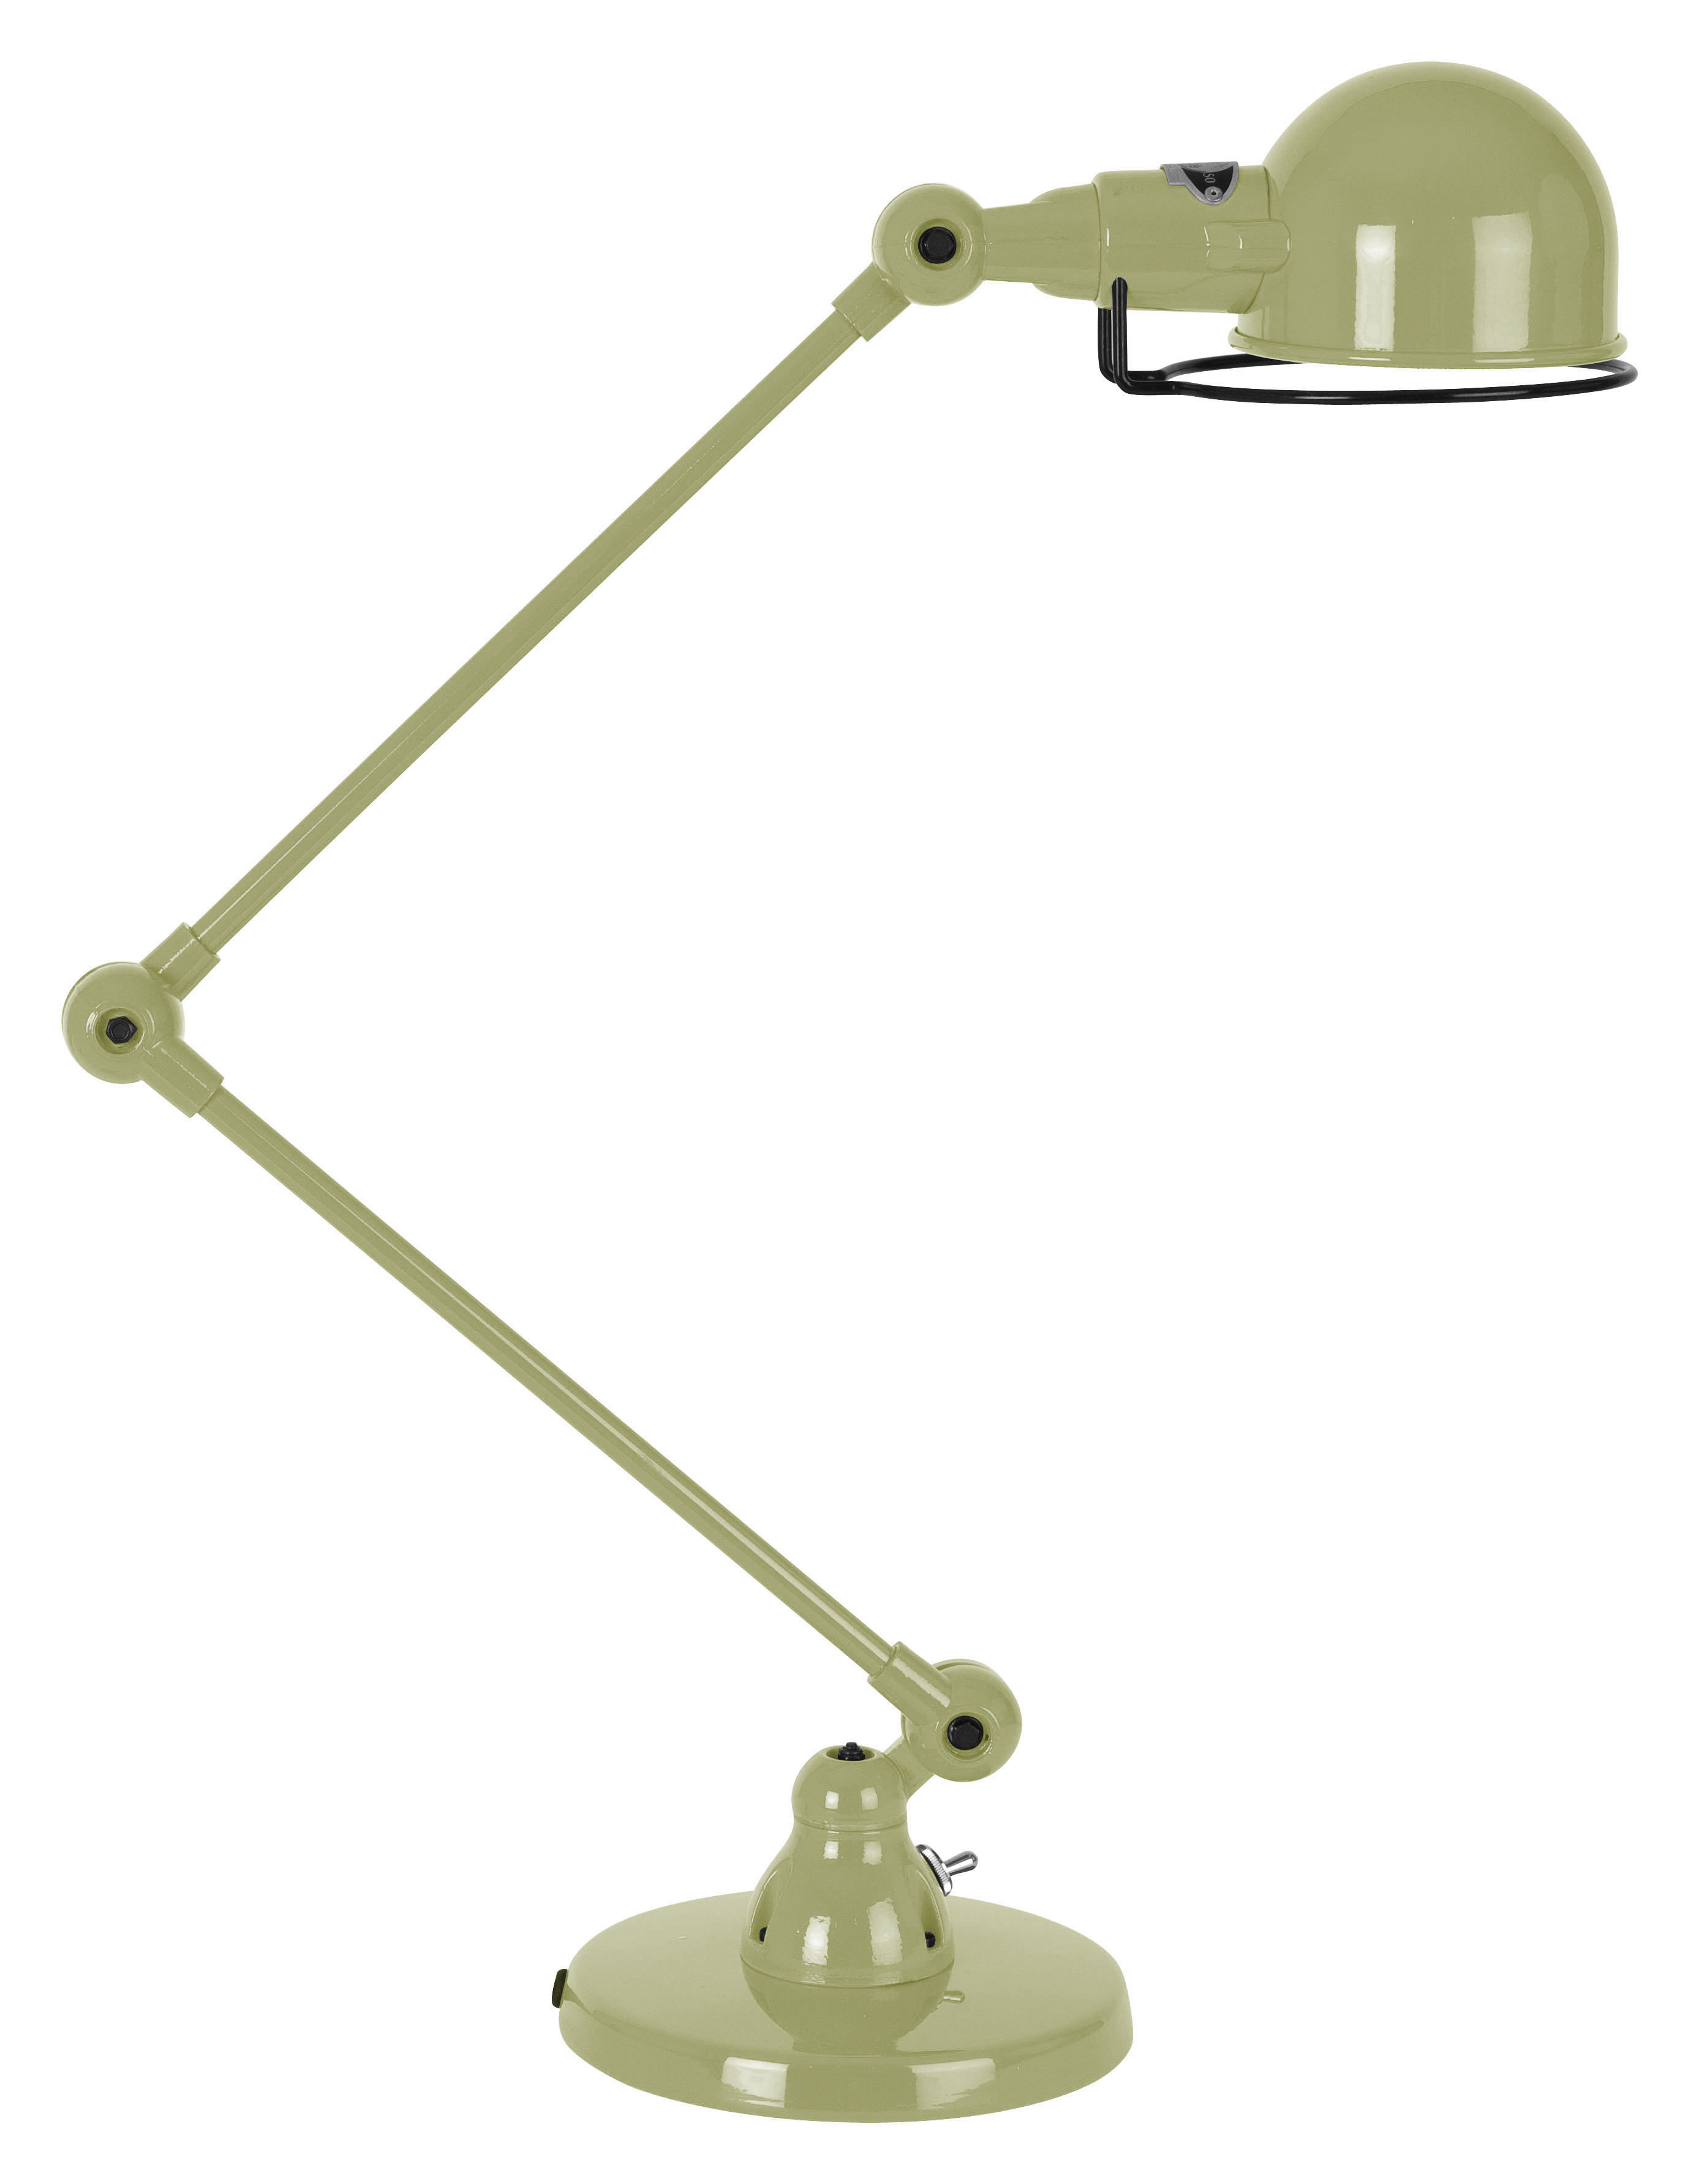 Signal table lamp 2 arms h max 60 cm may green by jielde for Table lamp with 2 arms